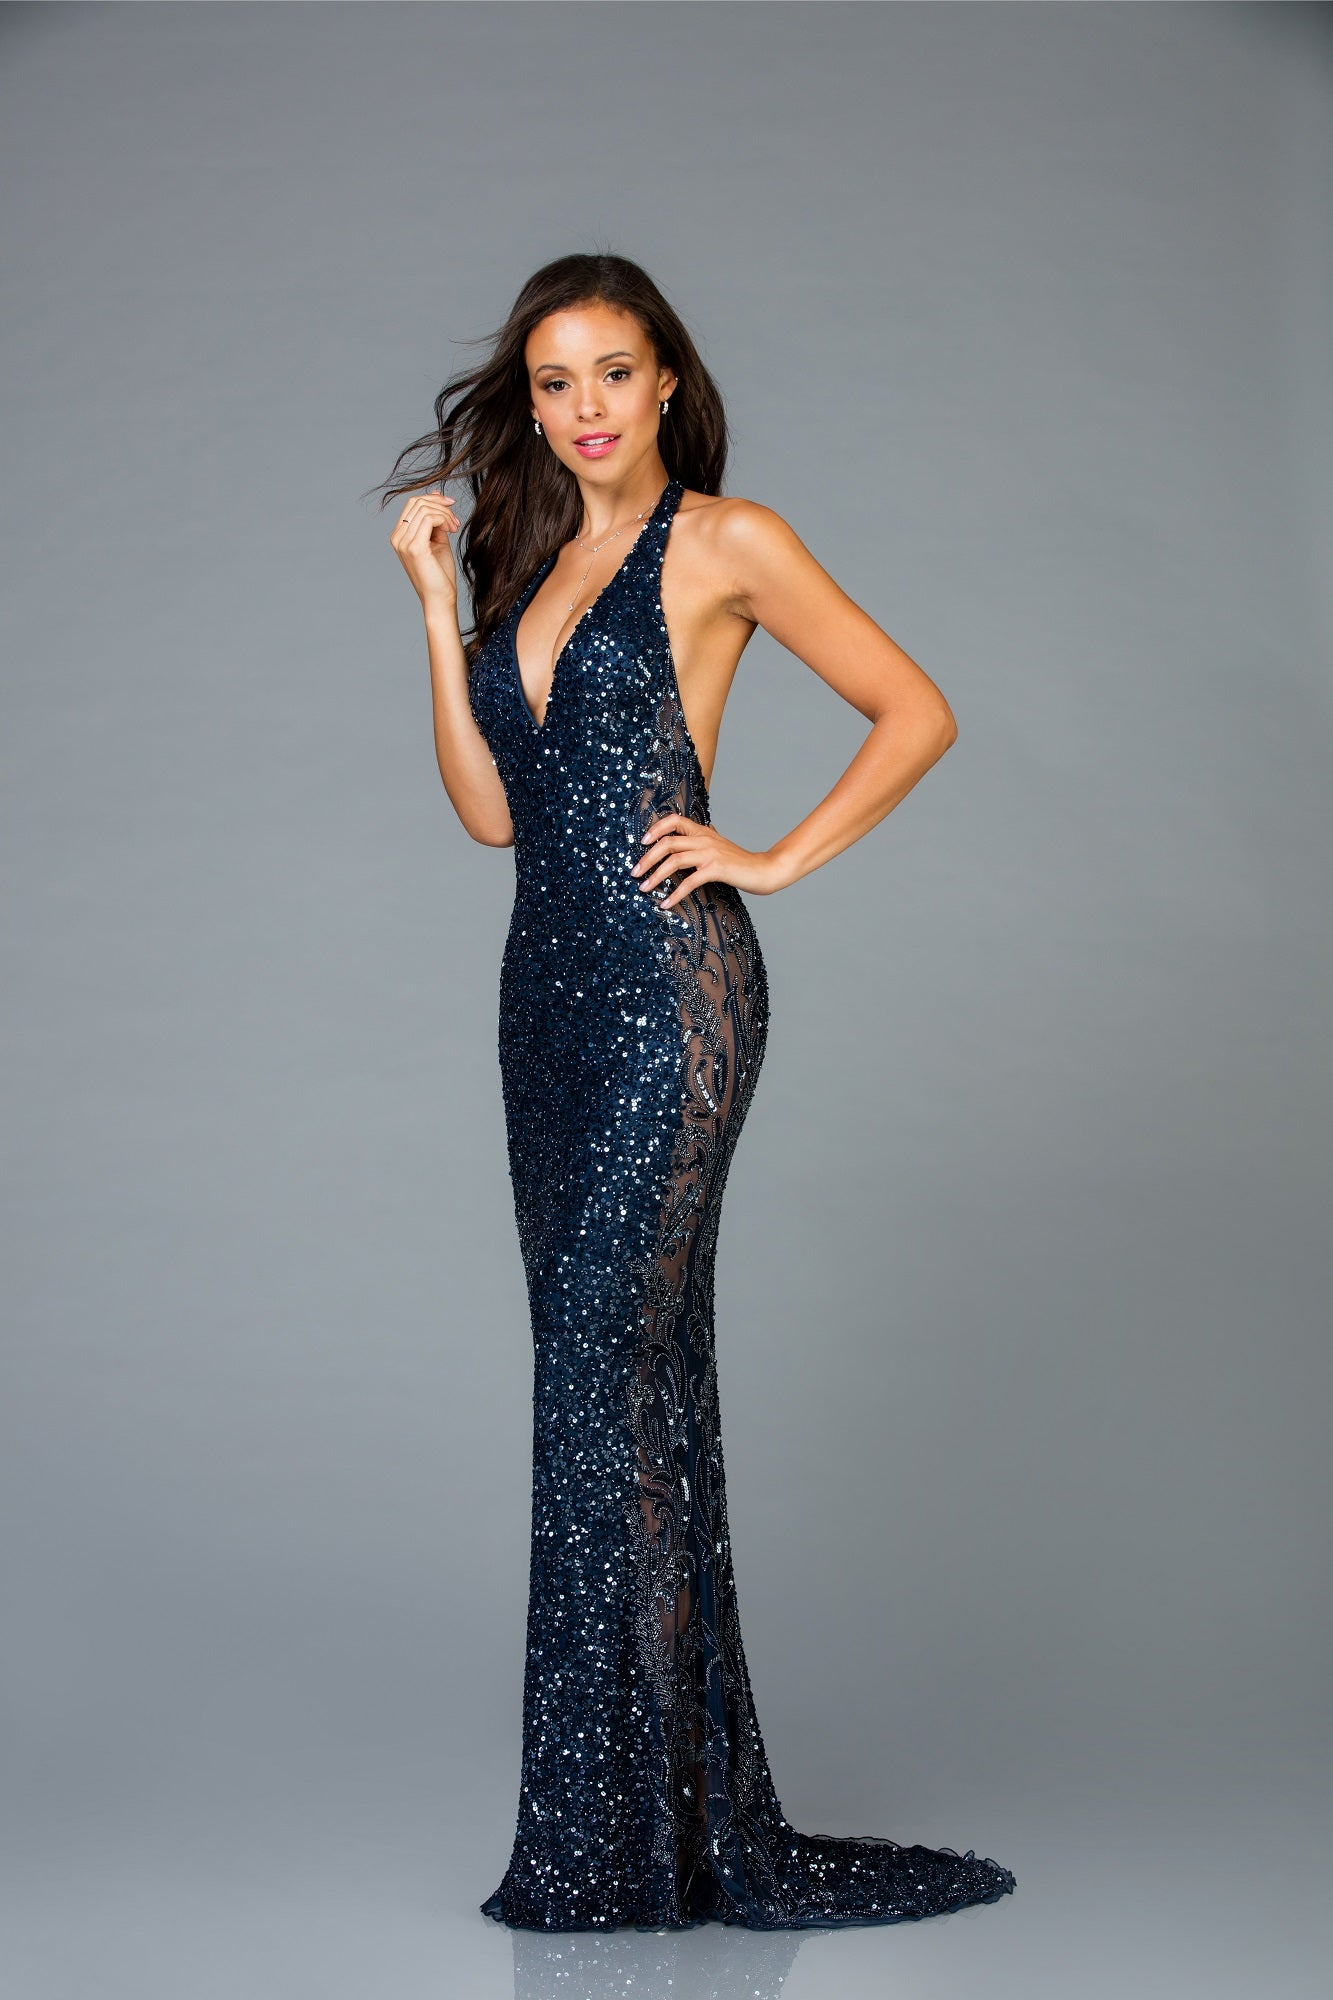 d5baa1b1603d Scala 48959 sequins beaded halter long dress with a low back - Mia ...